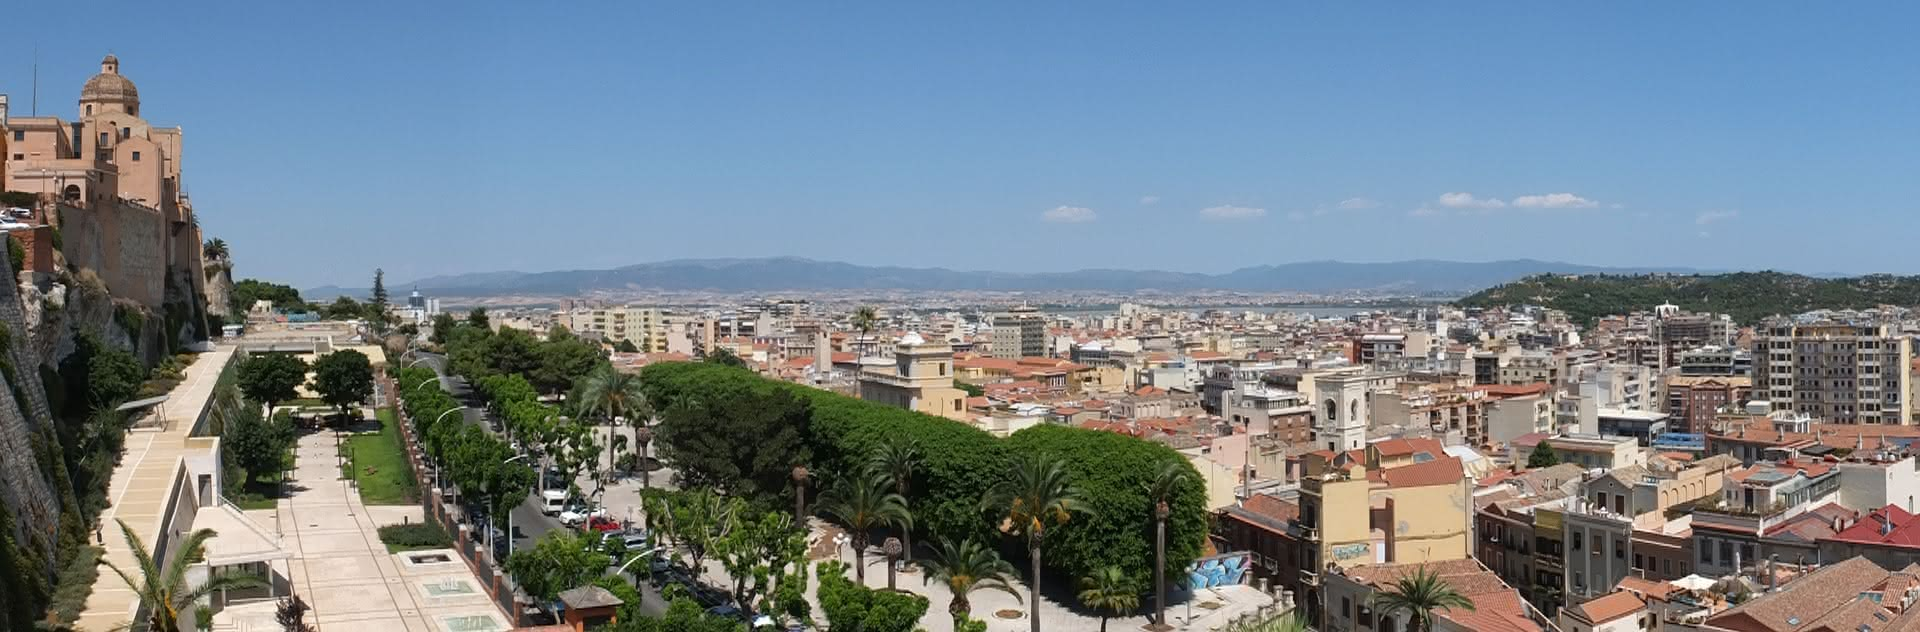 cagliari city header